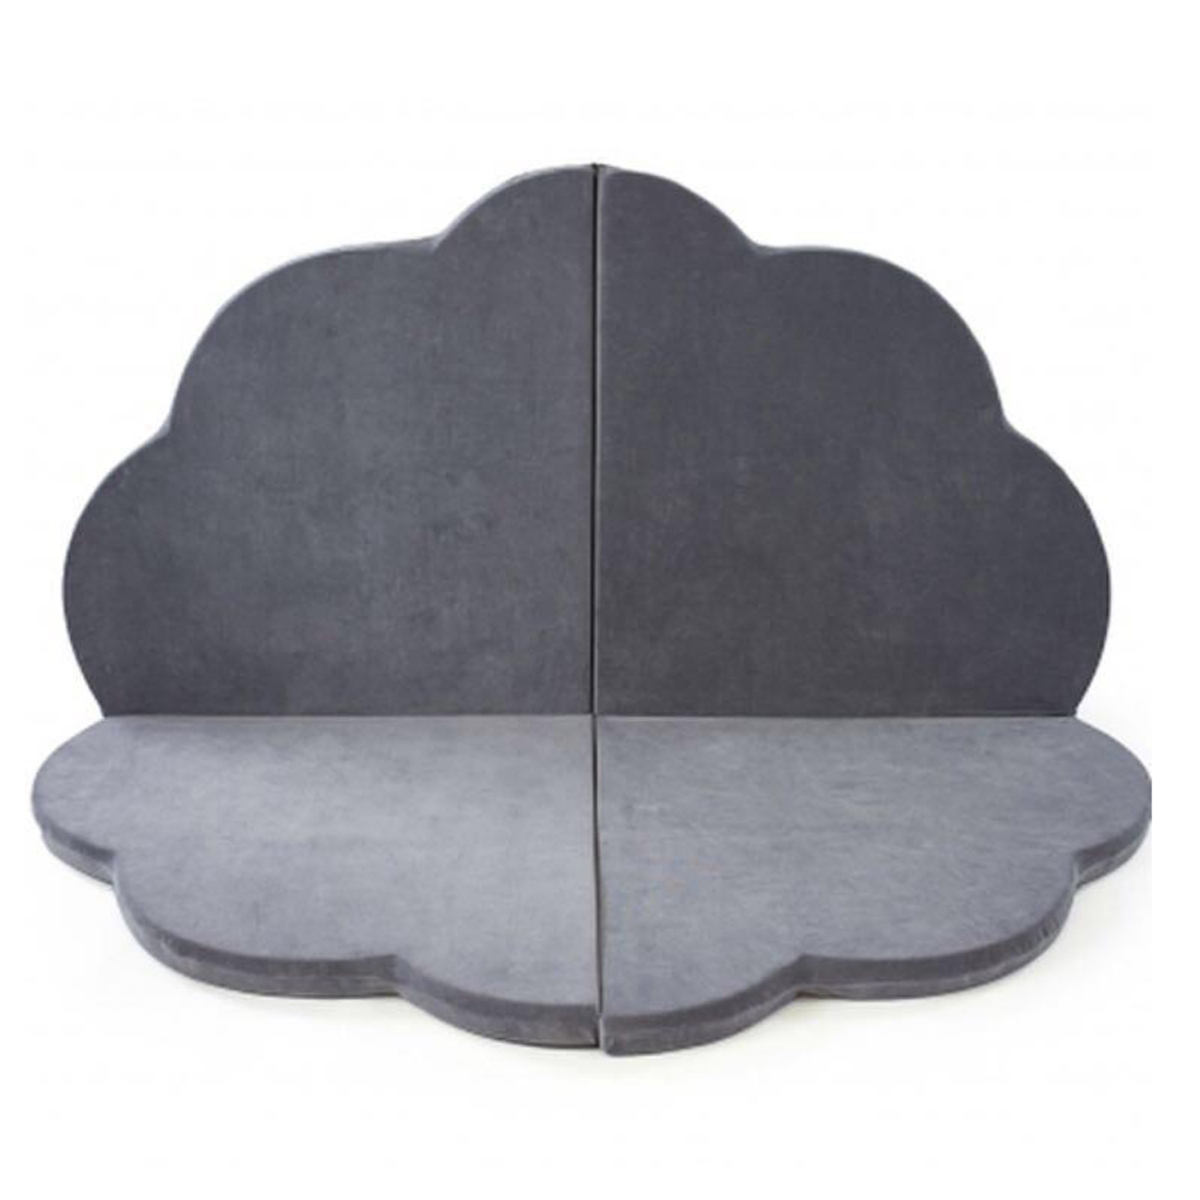 misioo tapis de jeu nuage gris tapis veil misioo sur. Black Bedroom Furniture Sets. Home Design Ideas